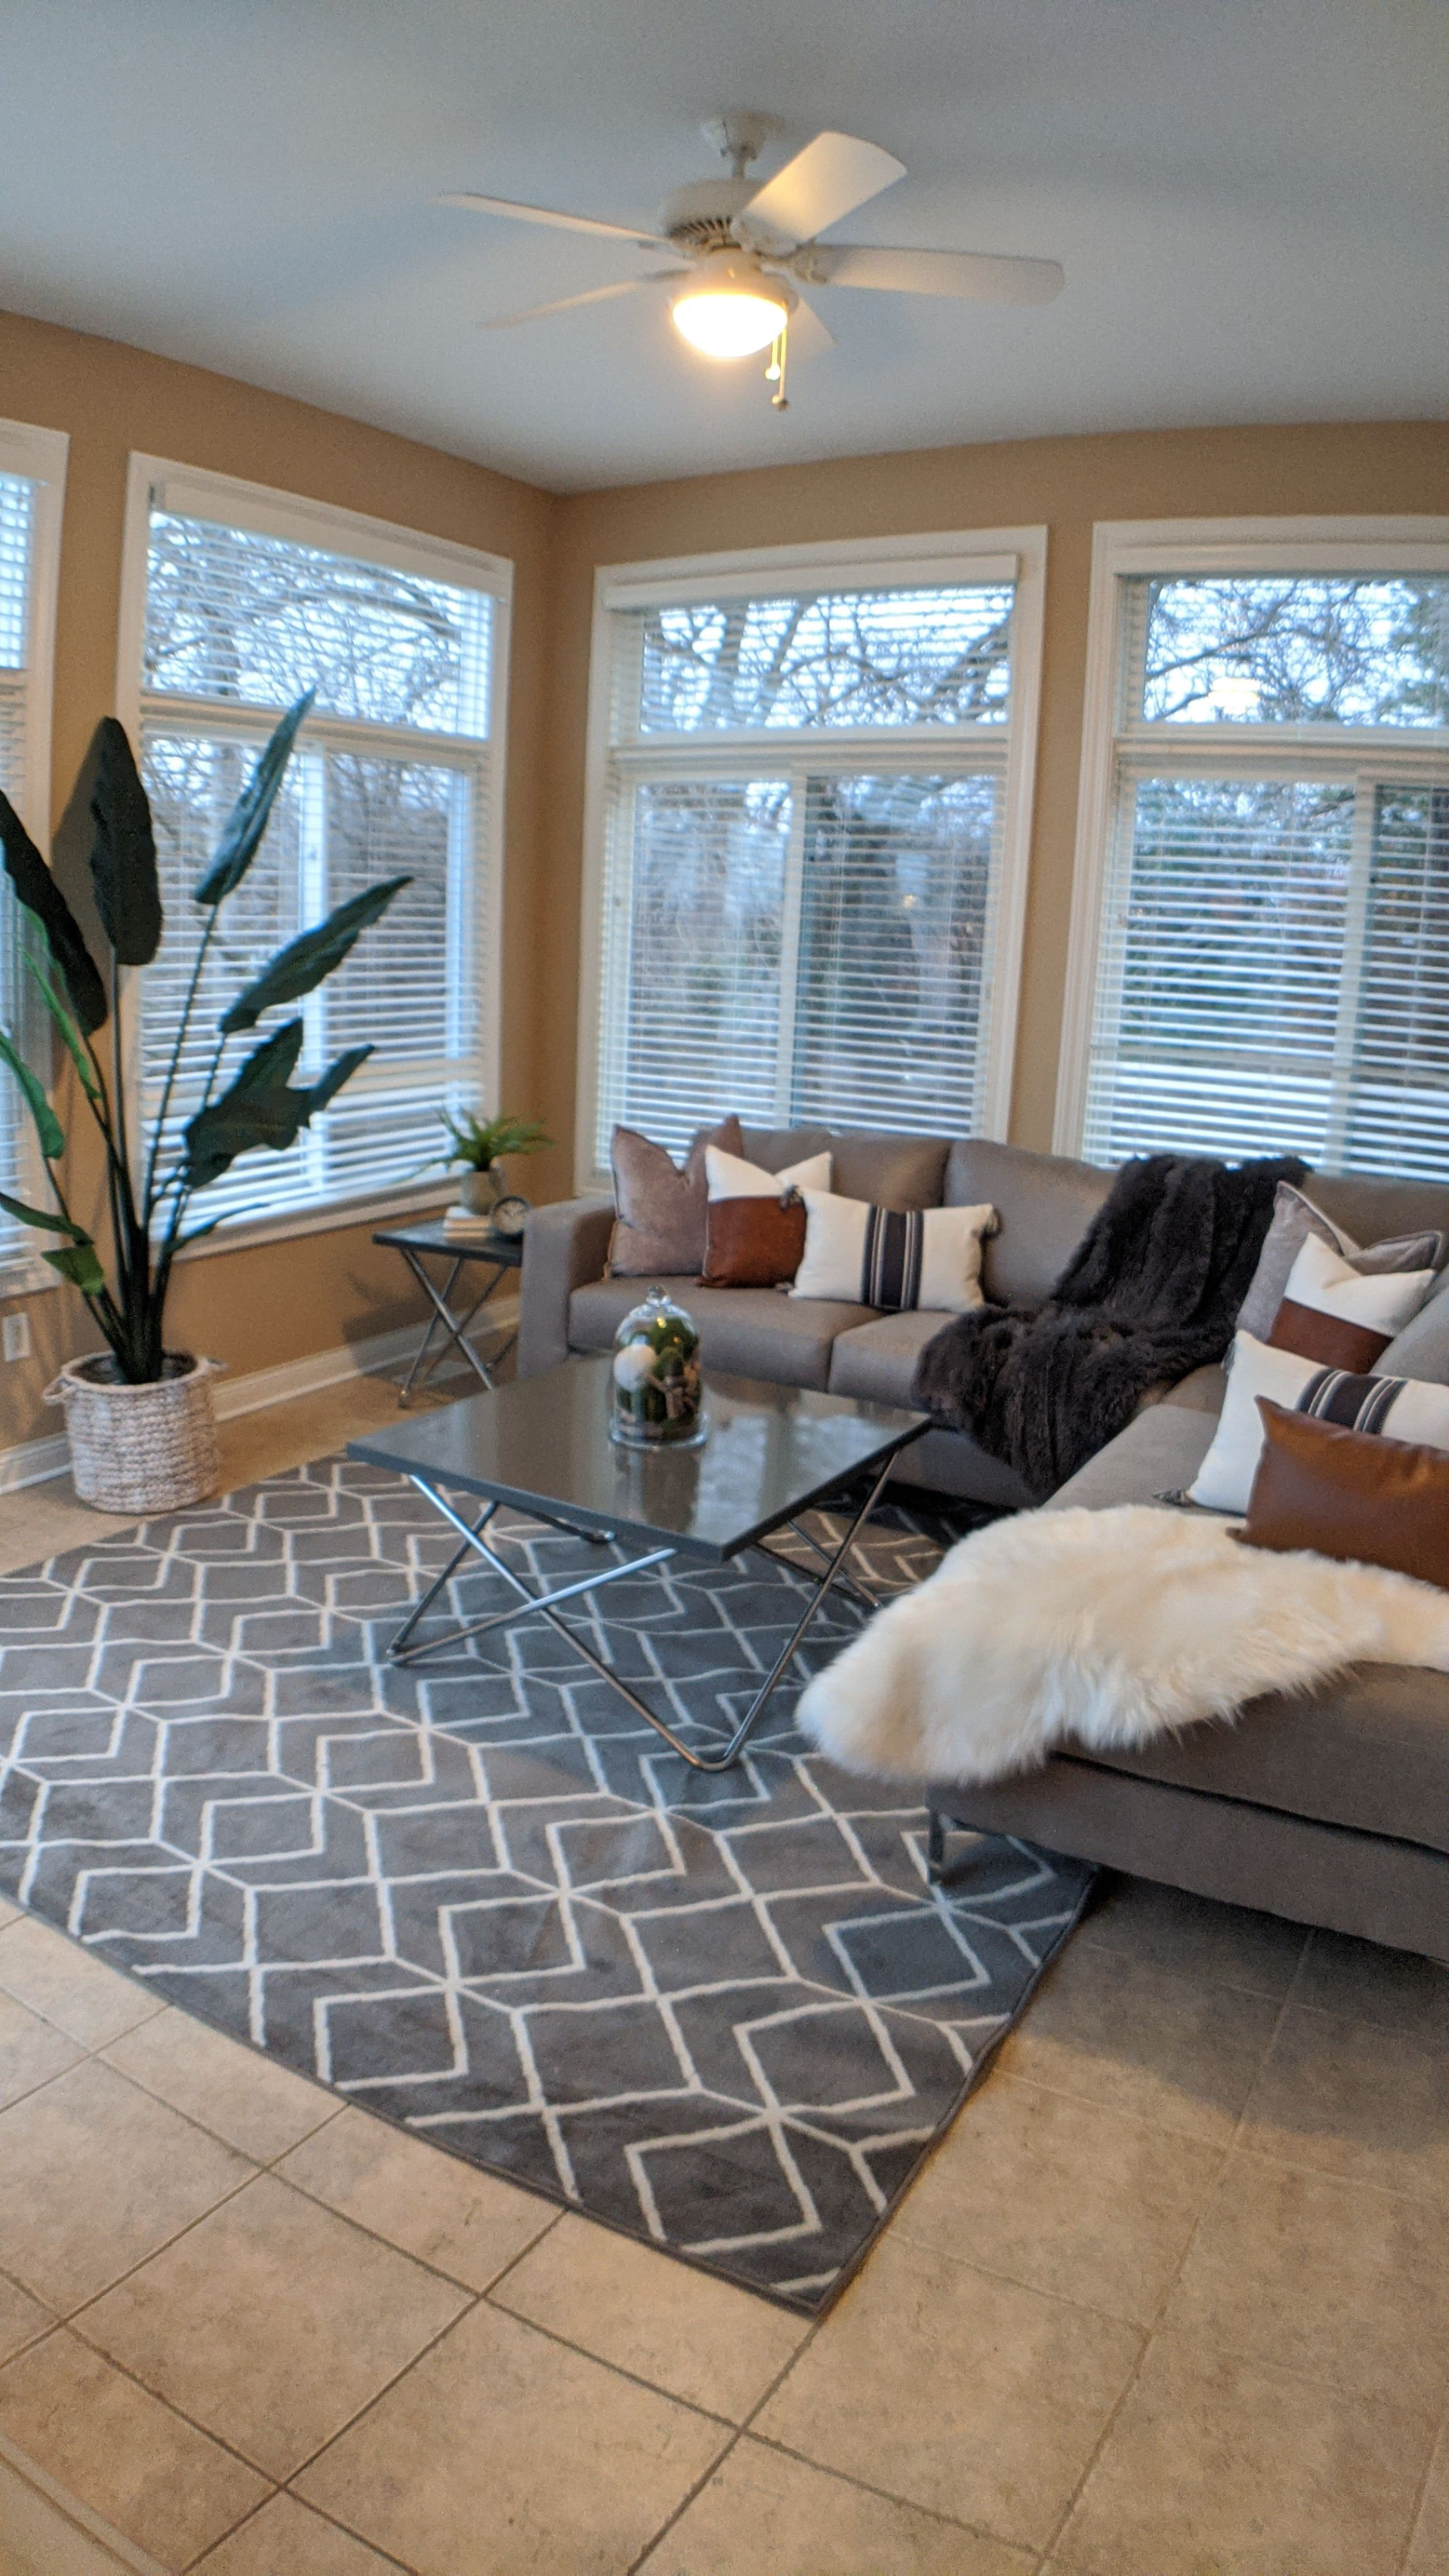 Executive townhome living room navy and gray. Ashley furniture Home staging interior design Velvet couch